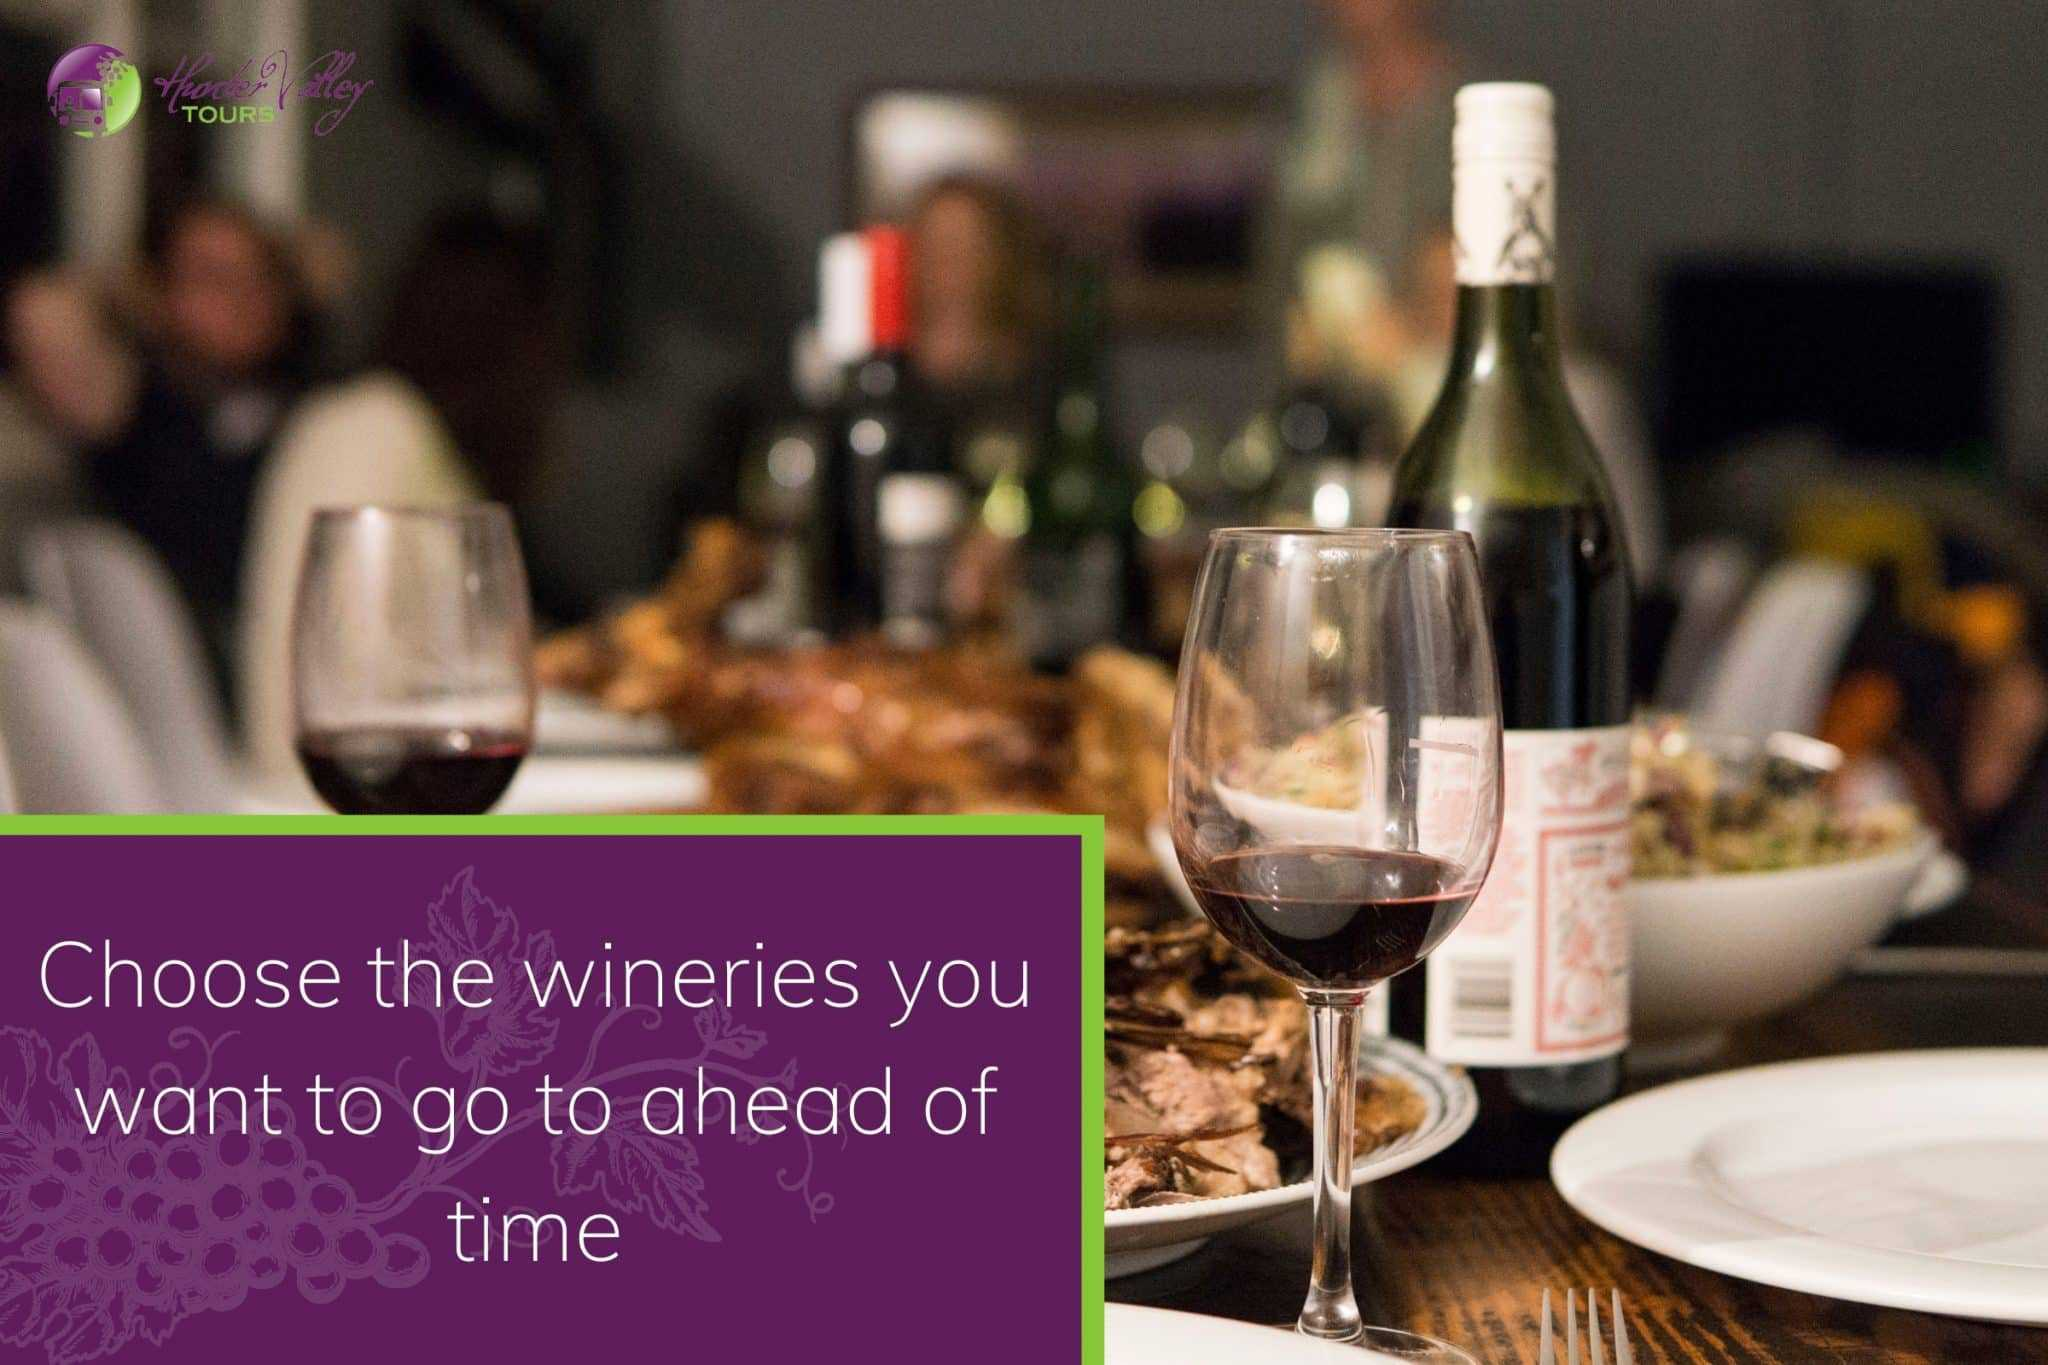 Choose the wineries you want to go to ahead of time